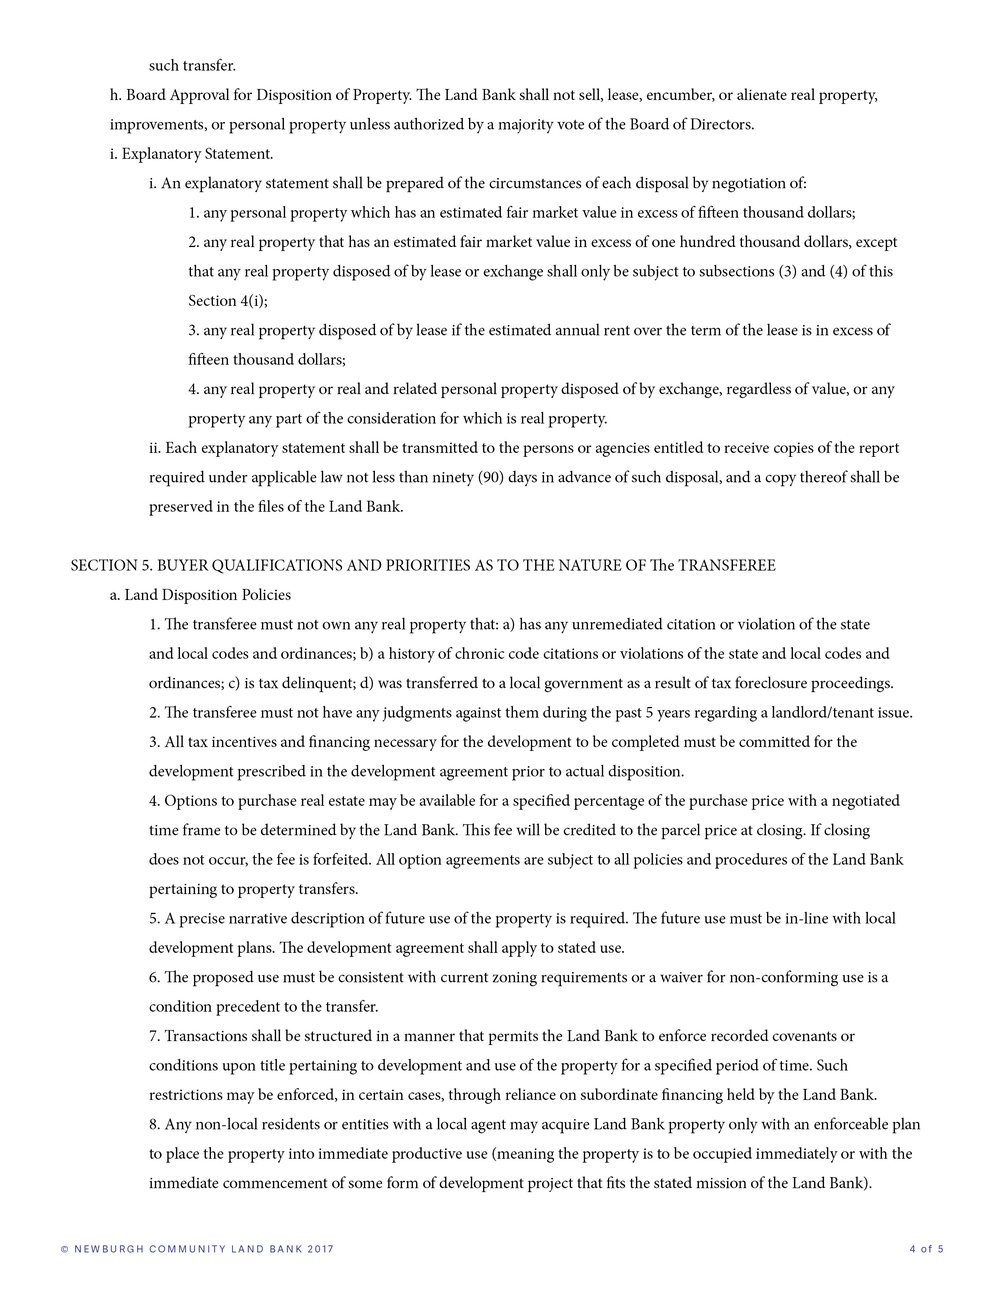 NCLB Disposition Policy4.jpg